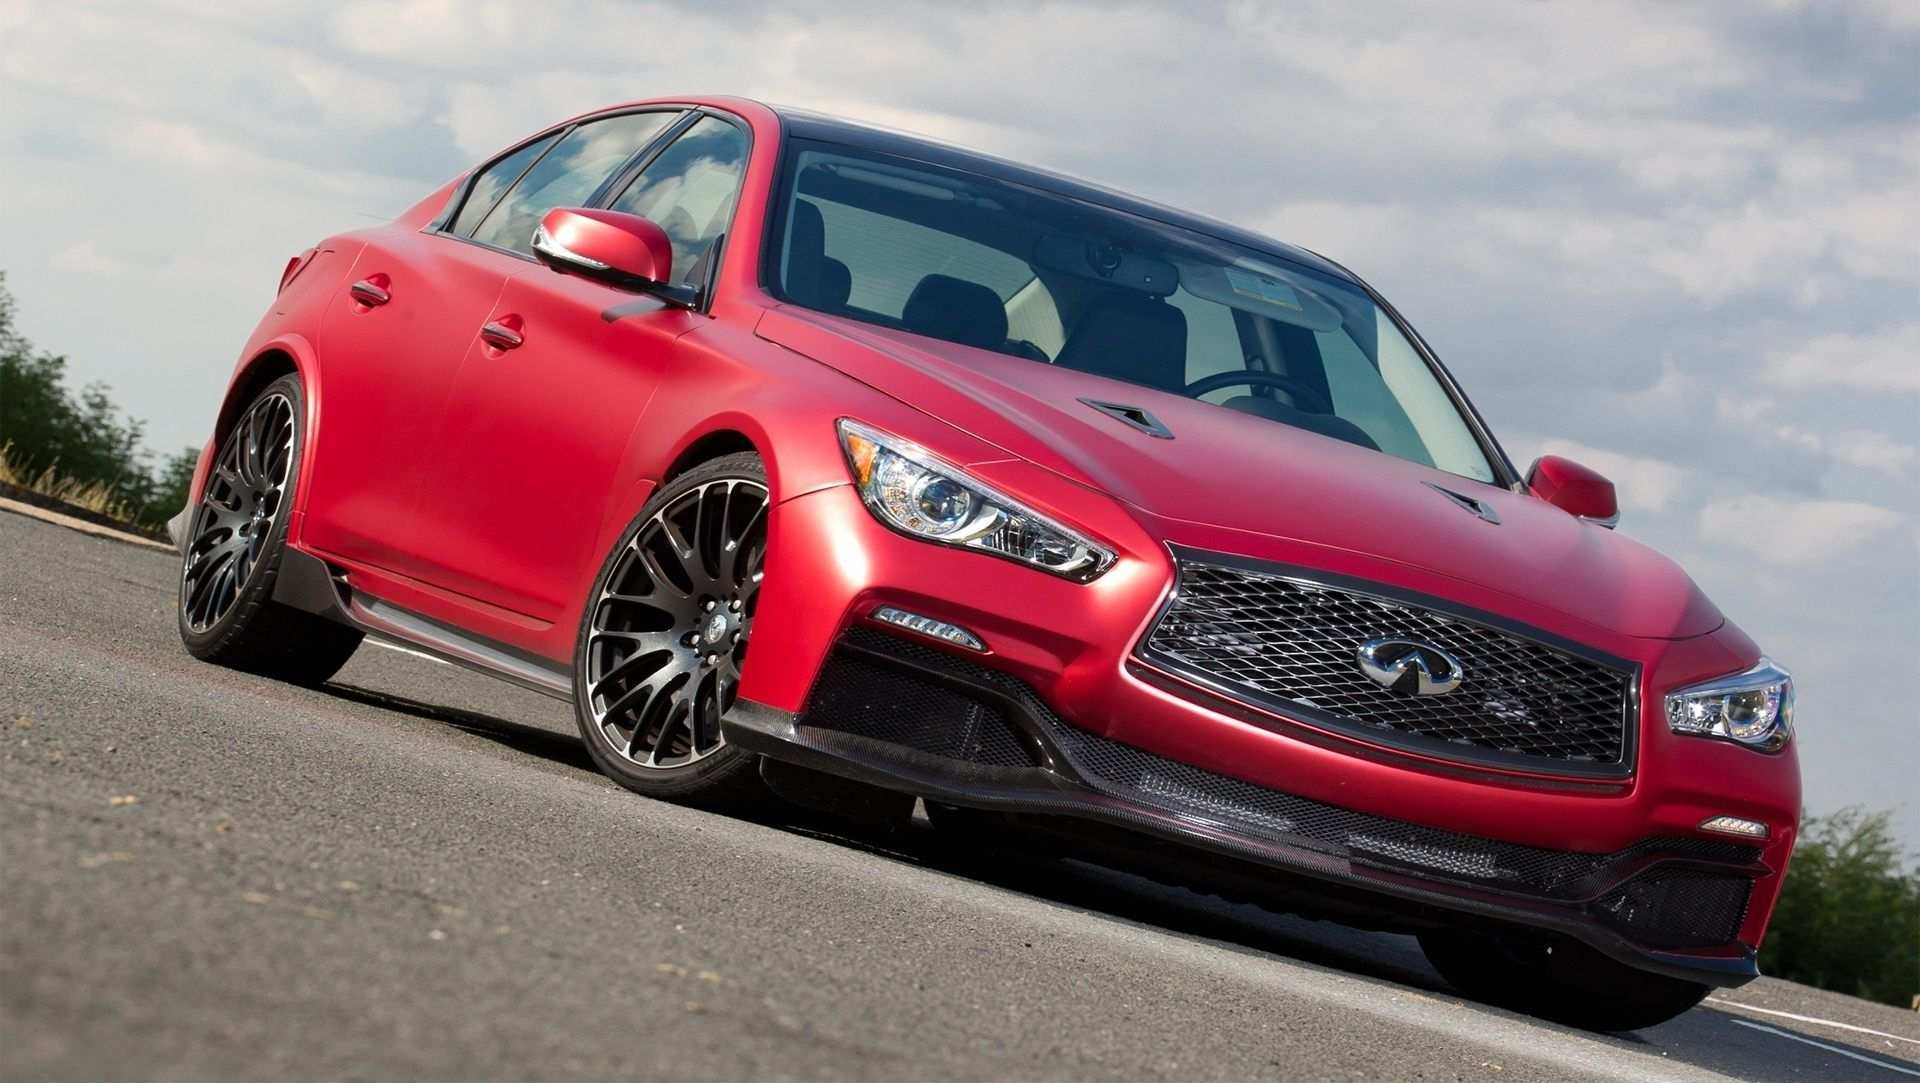 44 The 2020 Infiniti Q50 Coupe Eau Rouge Release for 2020 Infiniti Q50 Coupe Eau Rouge